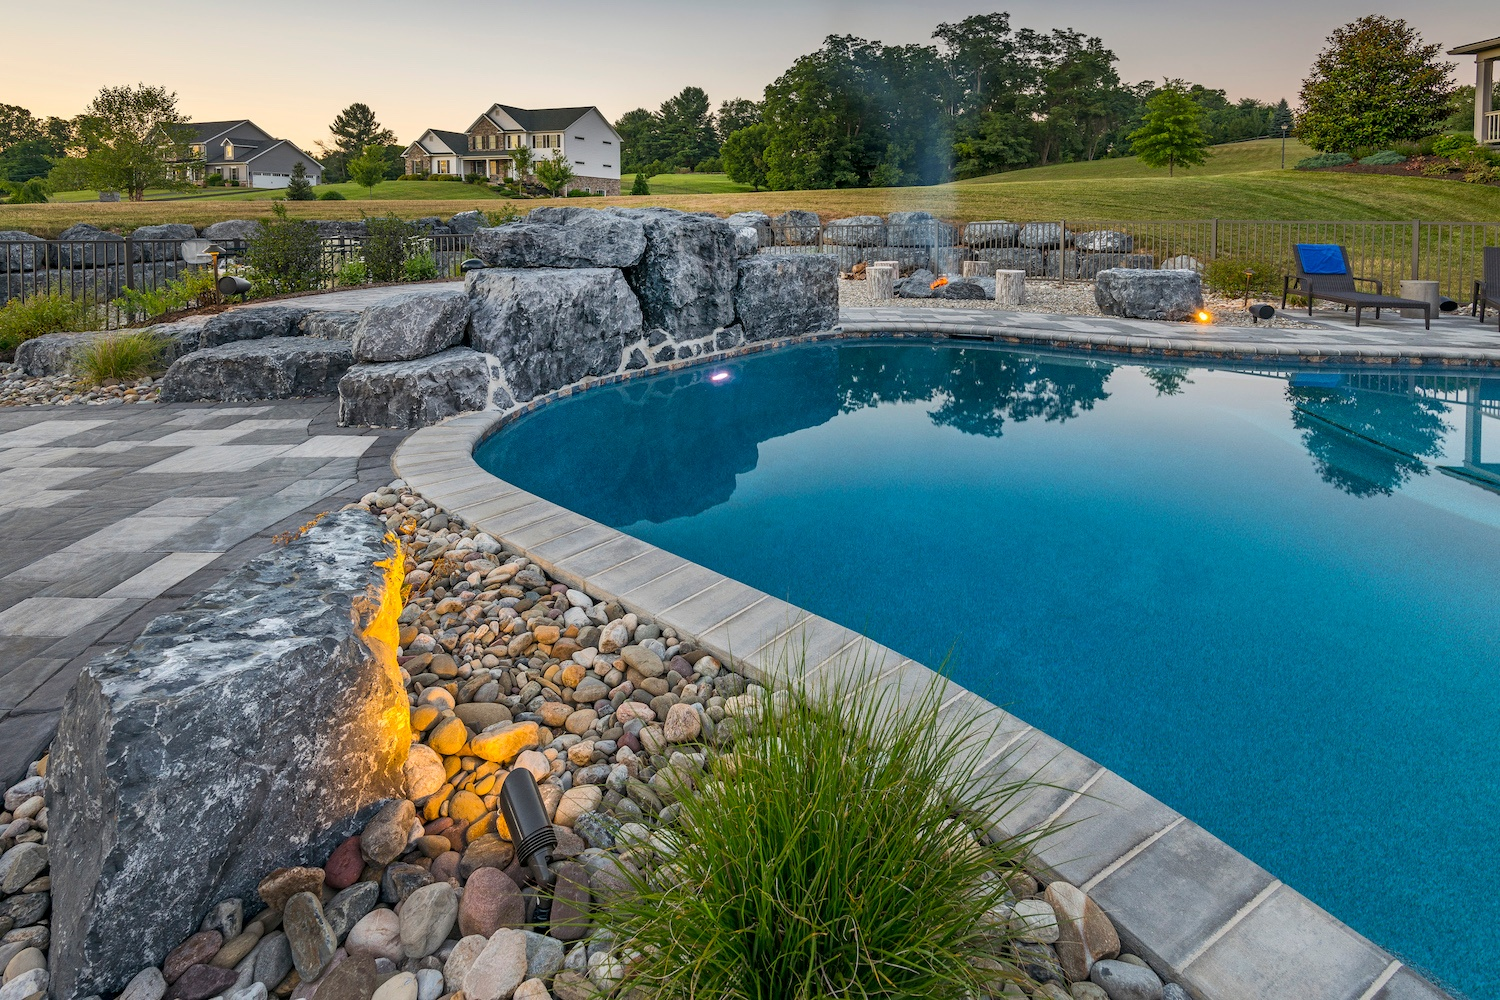 pool with jumping structure made from boulders